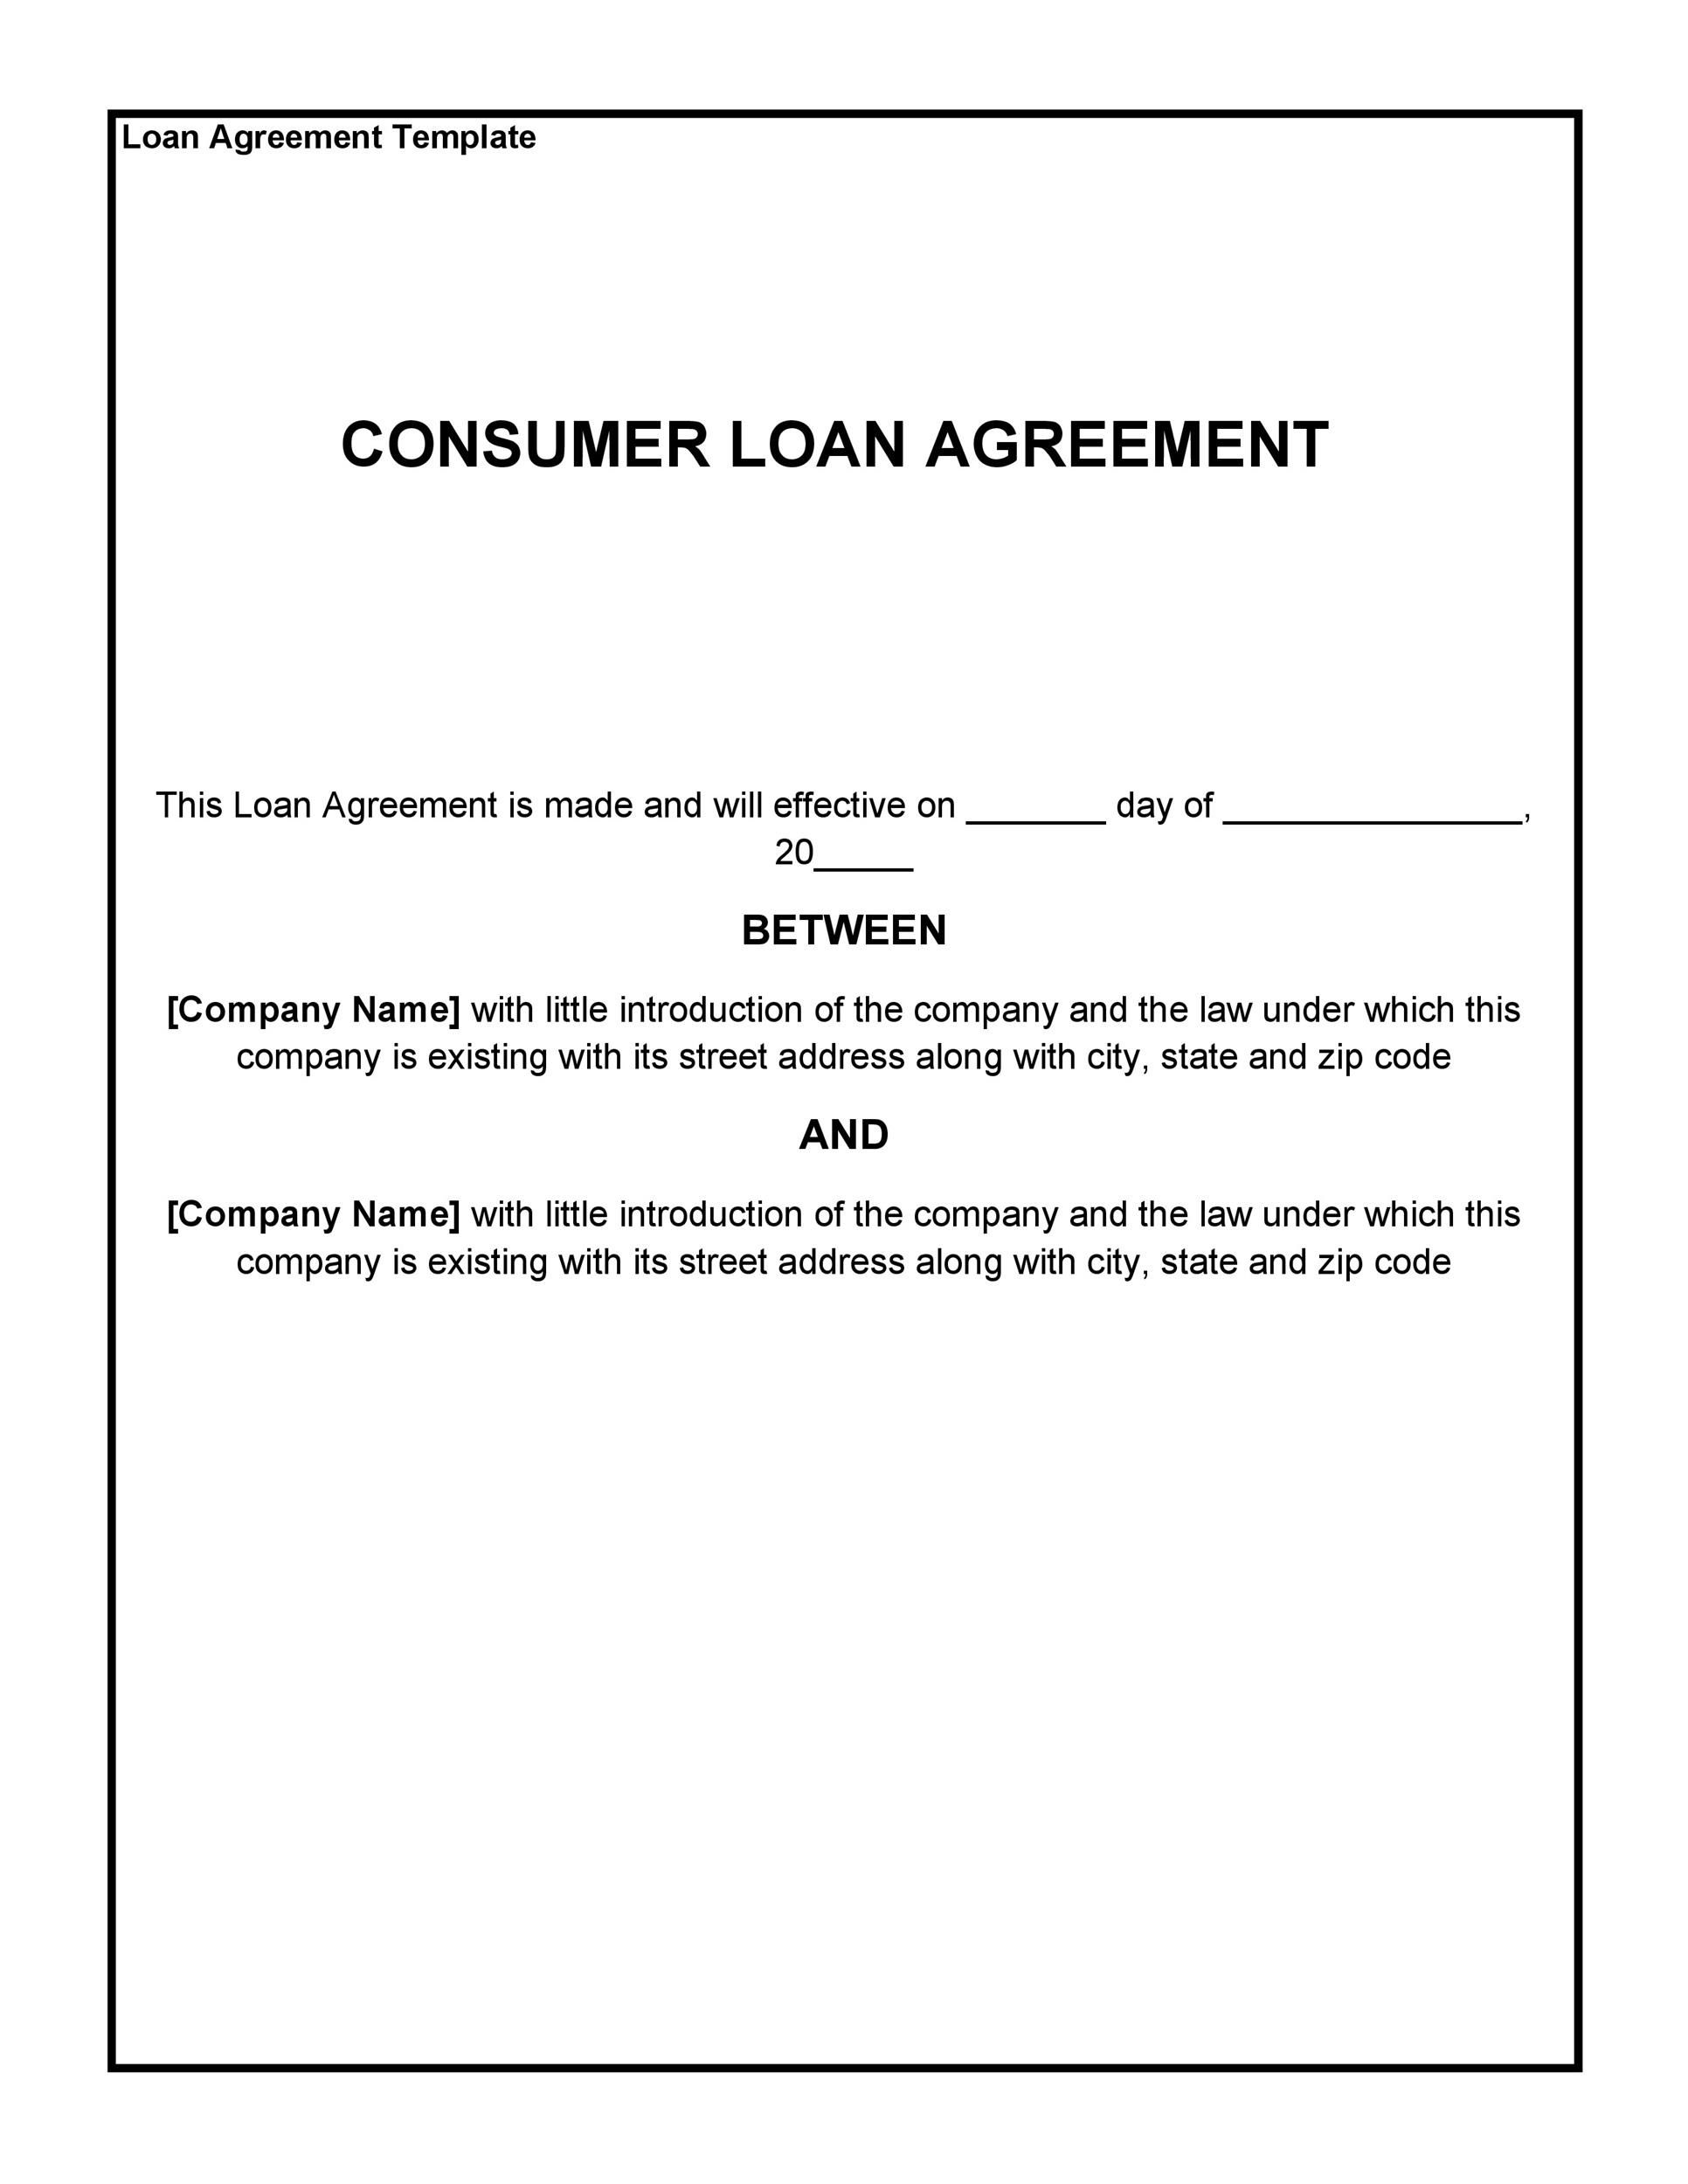 008 Fearsome Simple Family Loan Agreement Template Australia Design Full